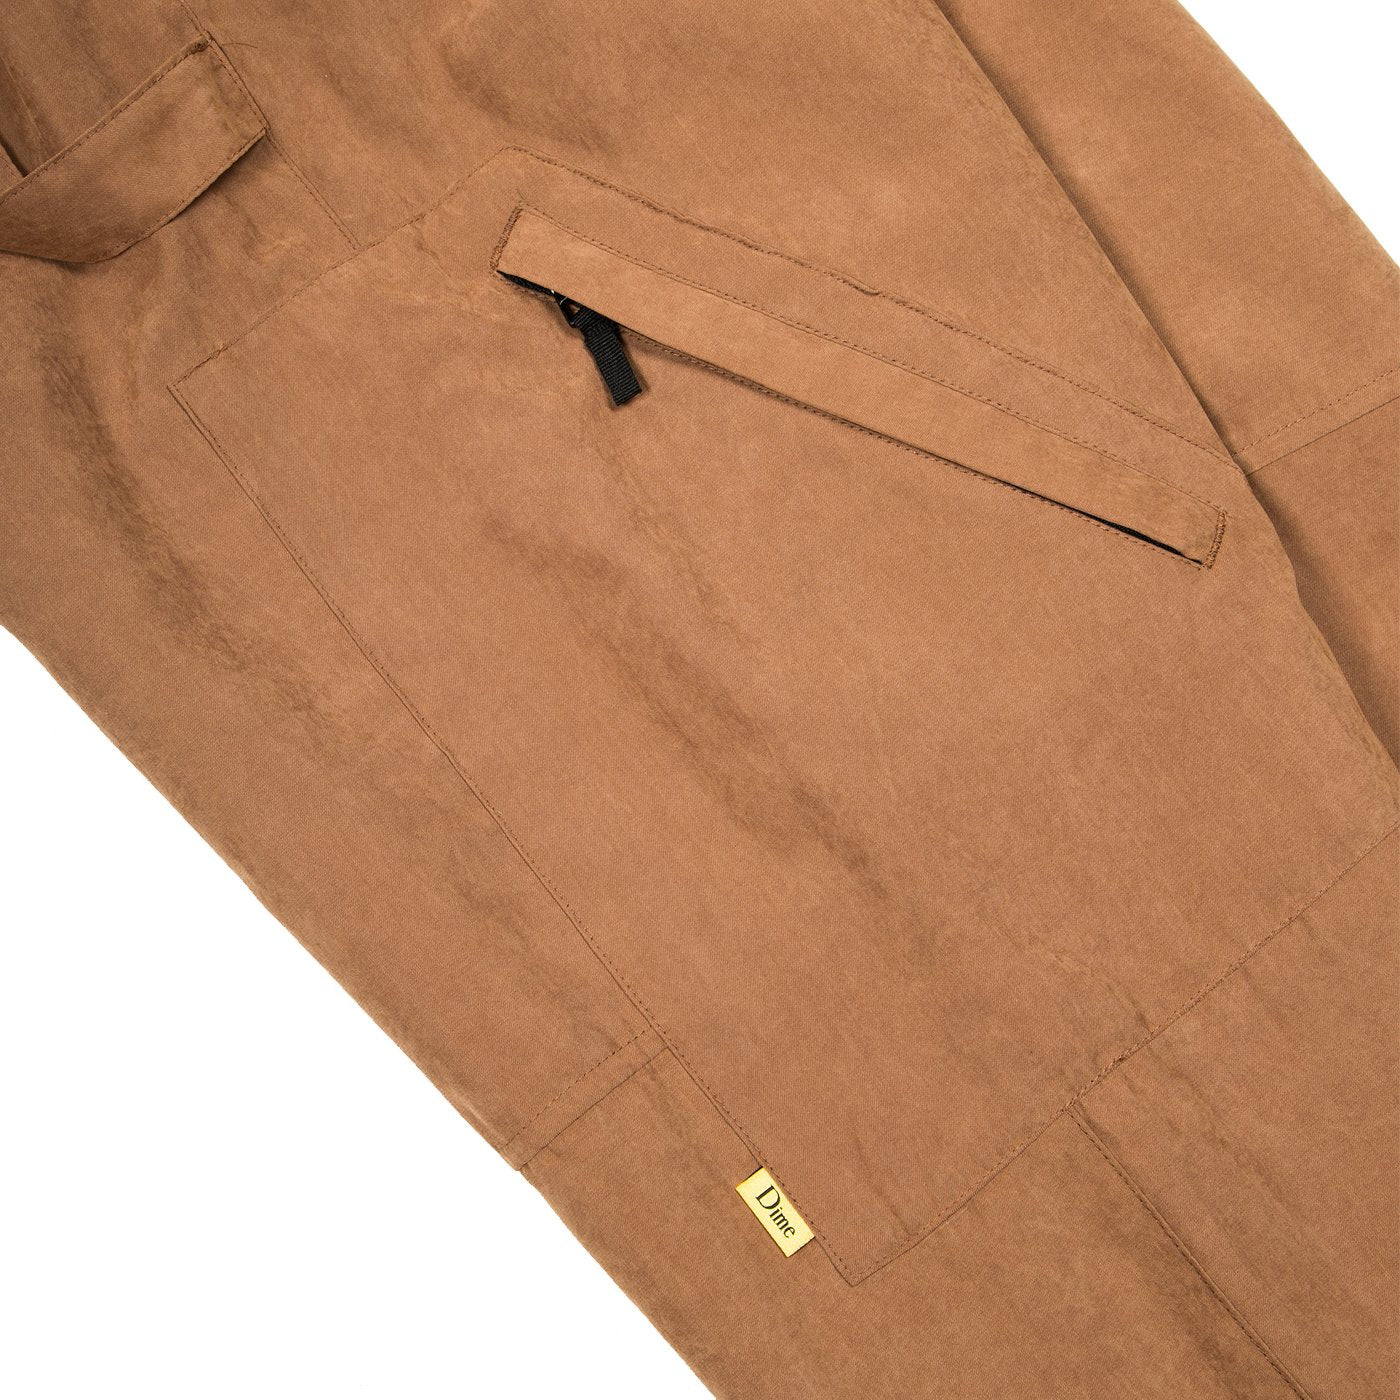 Dime Hiking Pants Product Photo #4